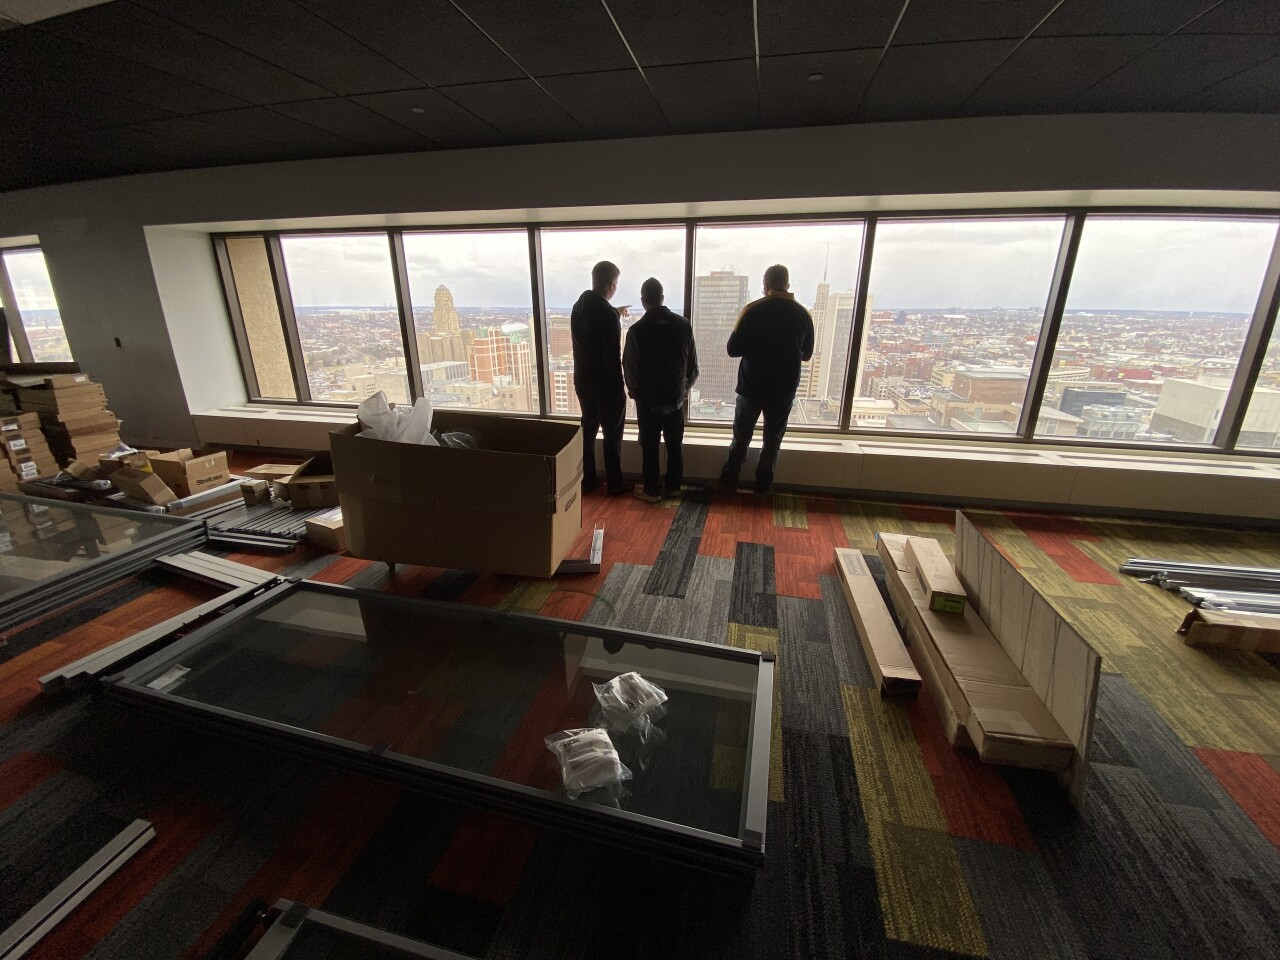 24th floor of Seneca One tower which will be the new headquarters for 43 North.